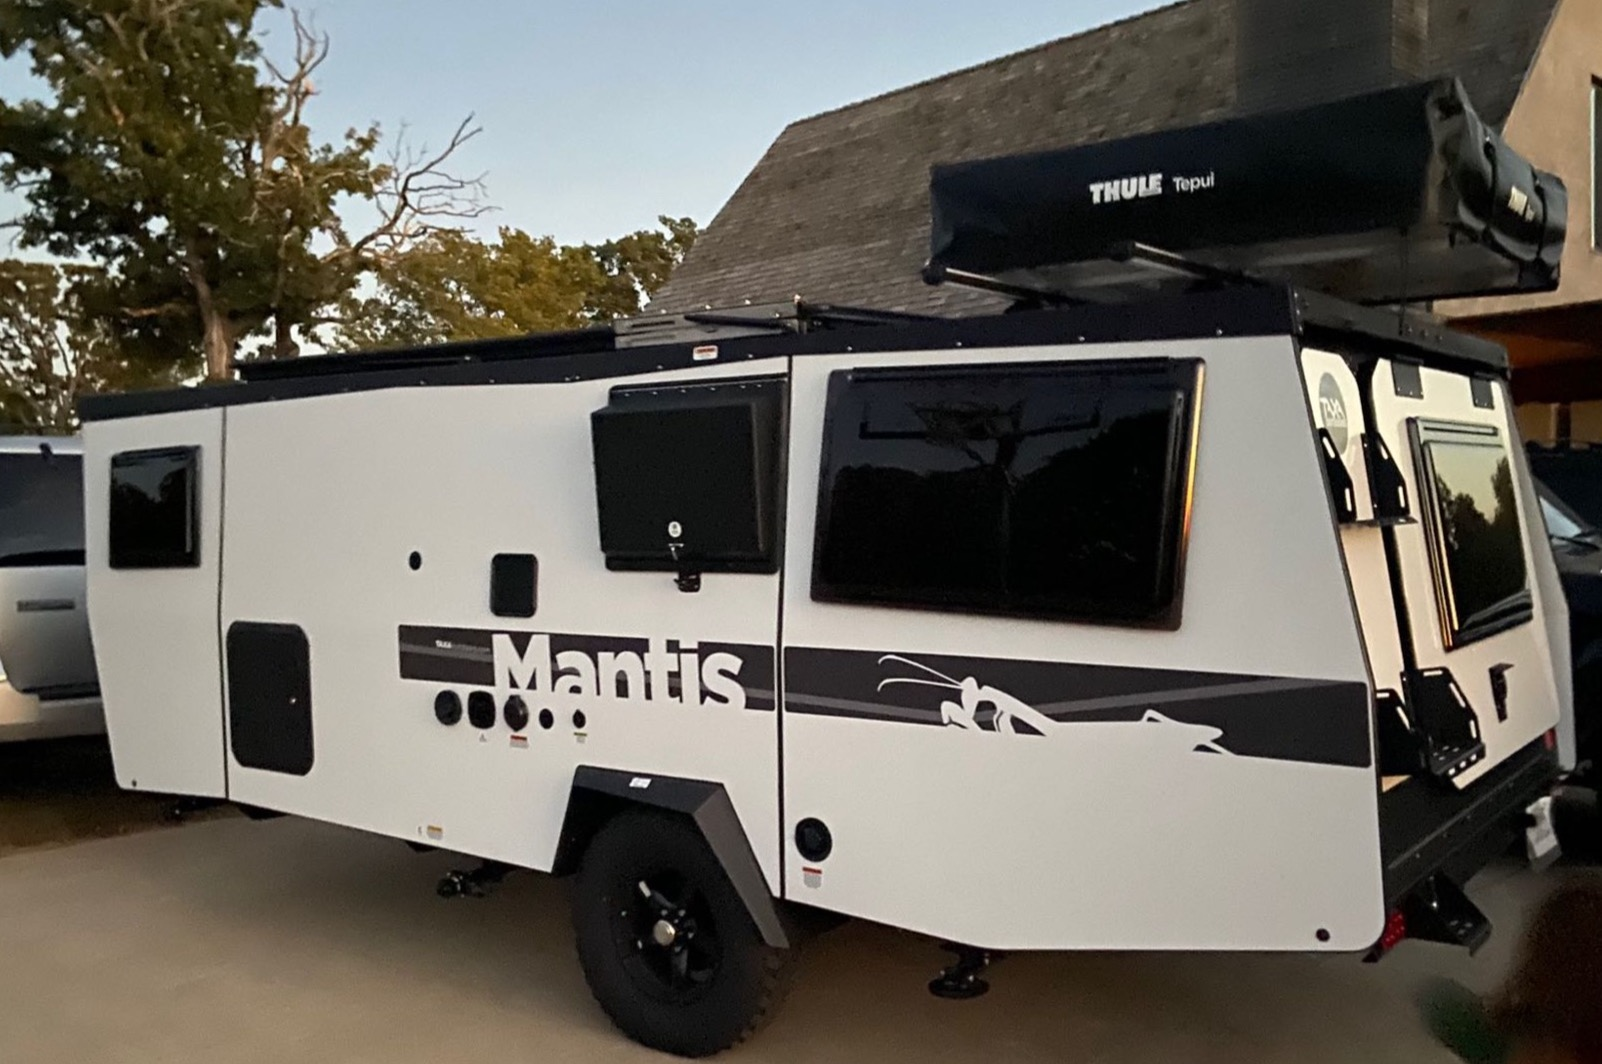 Easy access to solar and traditional power, water supply, and waste. As an added feature we have a Thule Tepui 3 man rooftop tent.. TAXA Outdoors Mantis Camper 2021